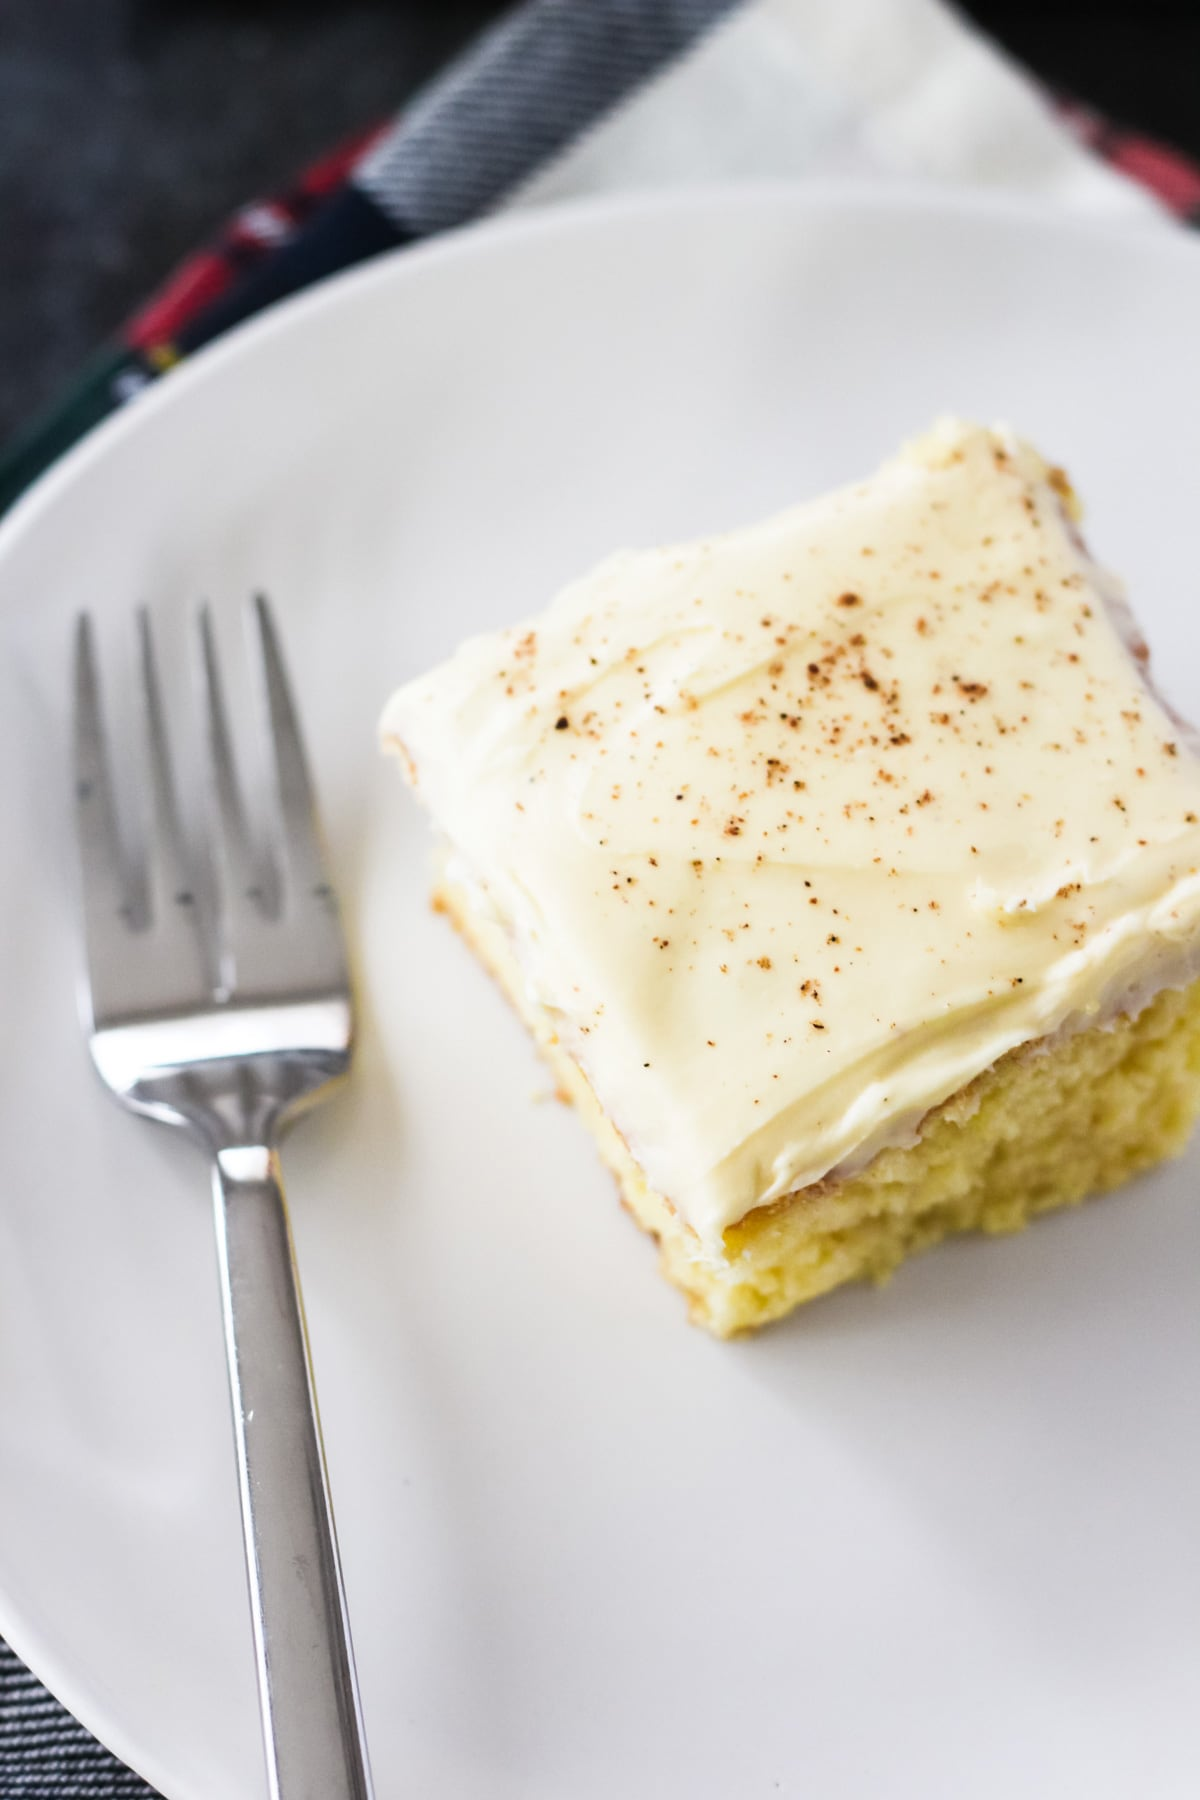 a square of frosted eggnog cake on a plate with a fork